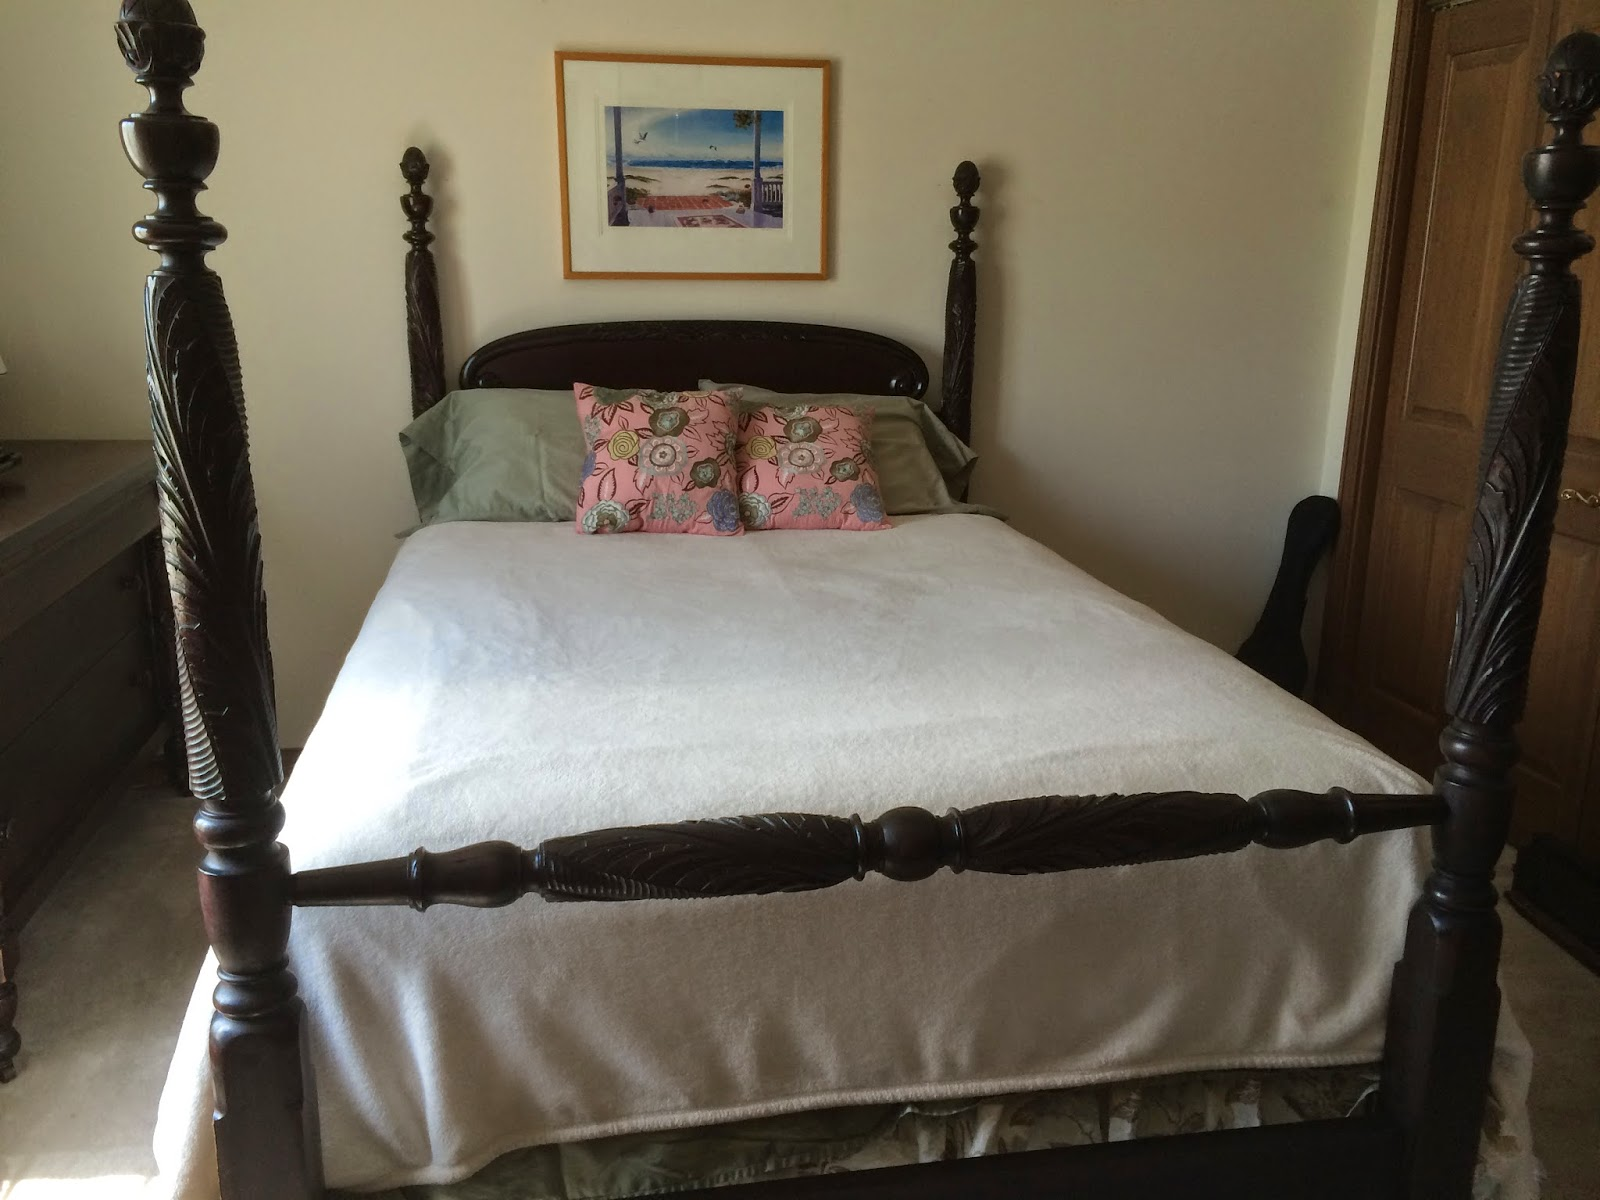 Full Bed Mattress A New Chapter Diy Converting Antique Bed To Queen Mattress